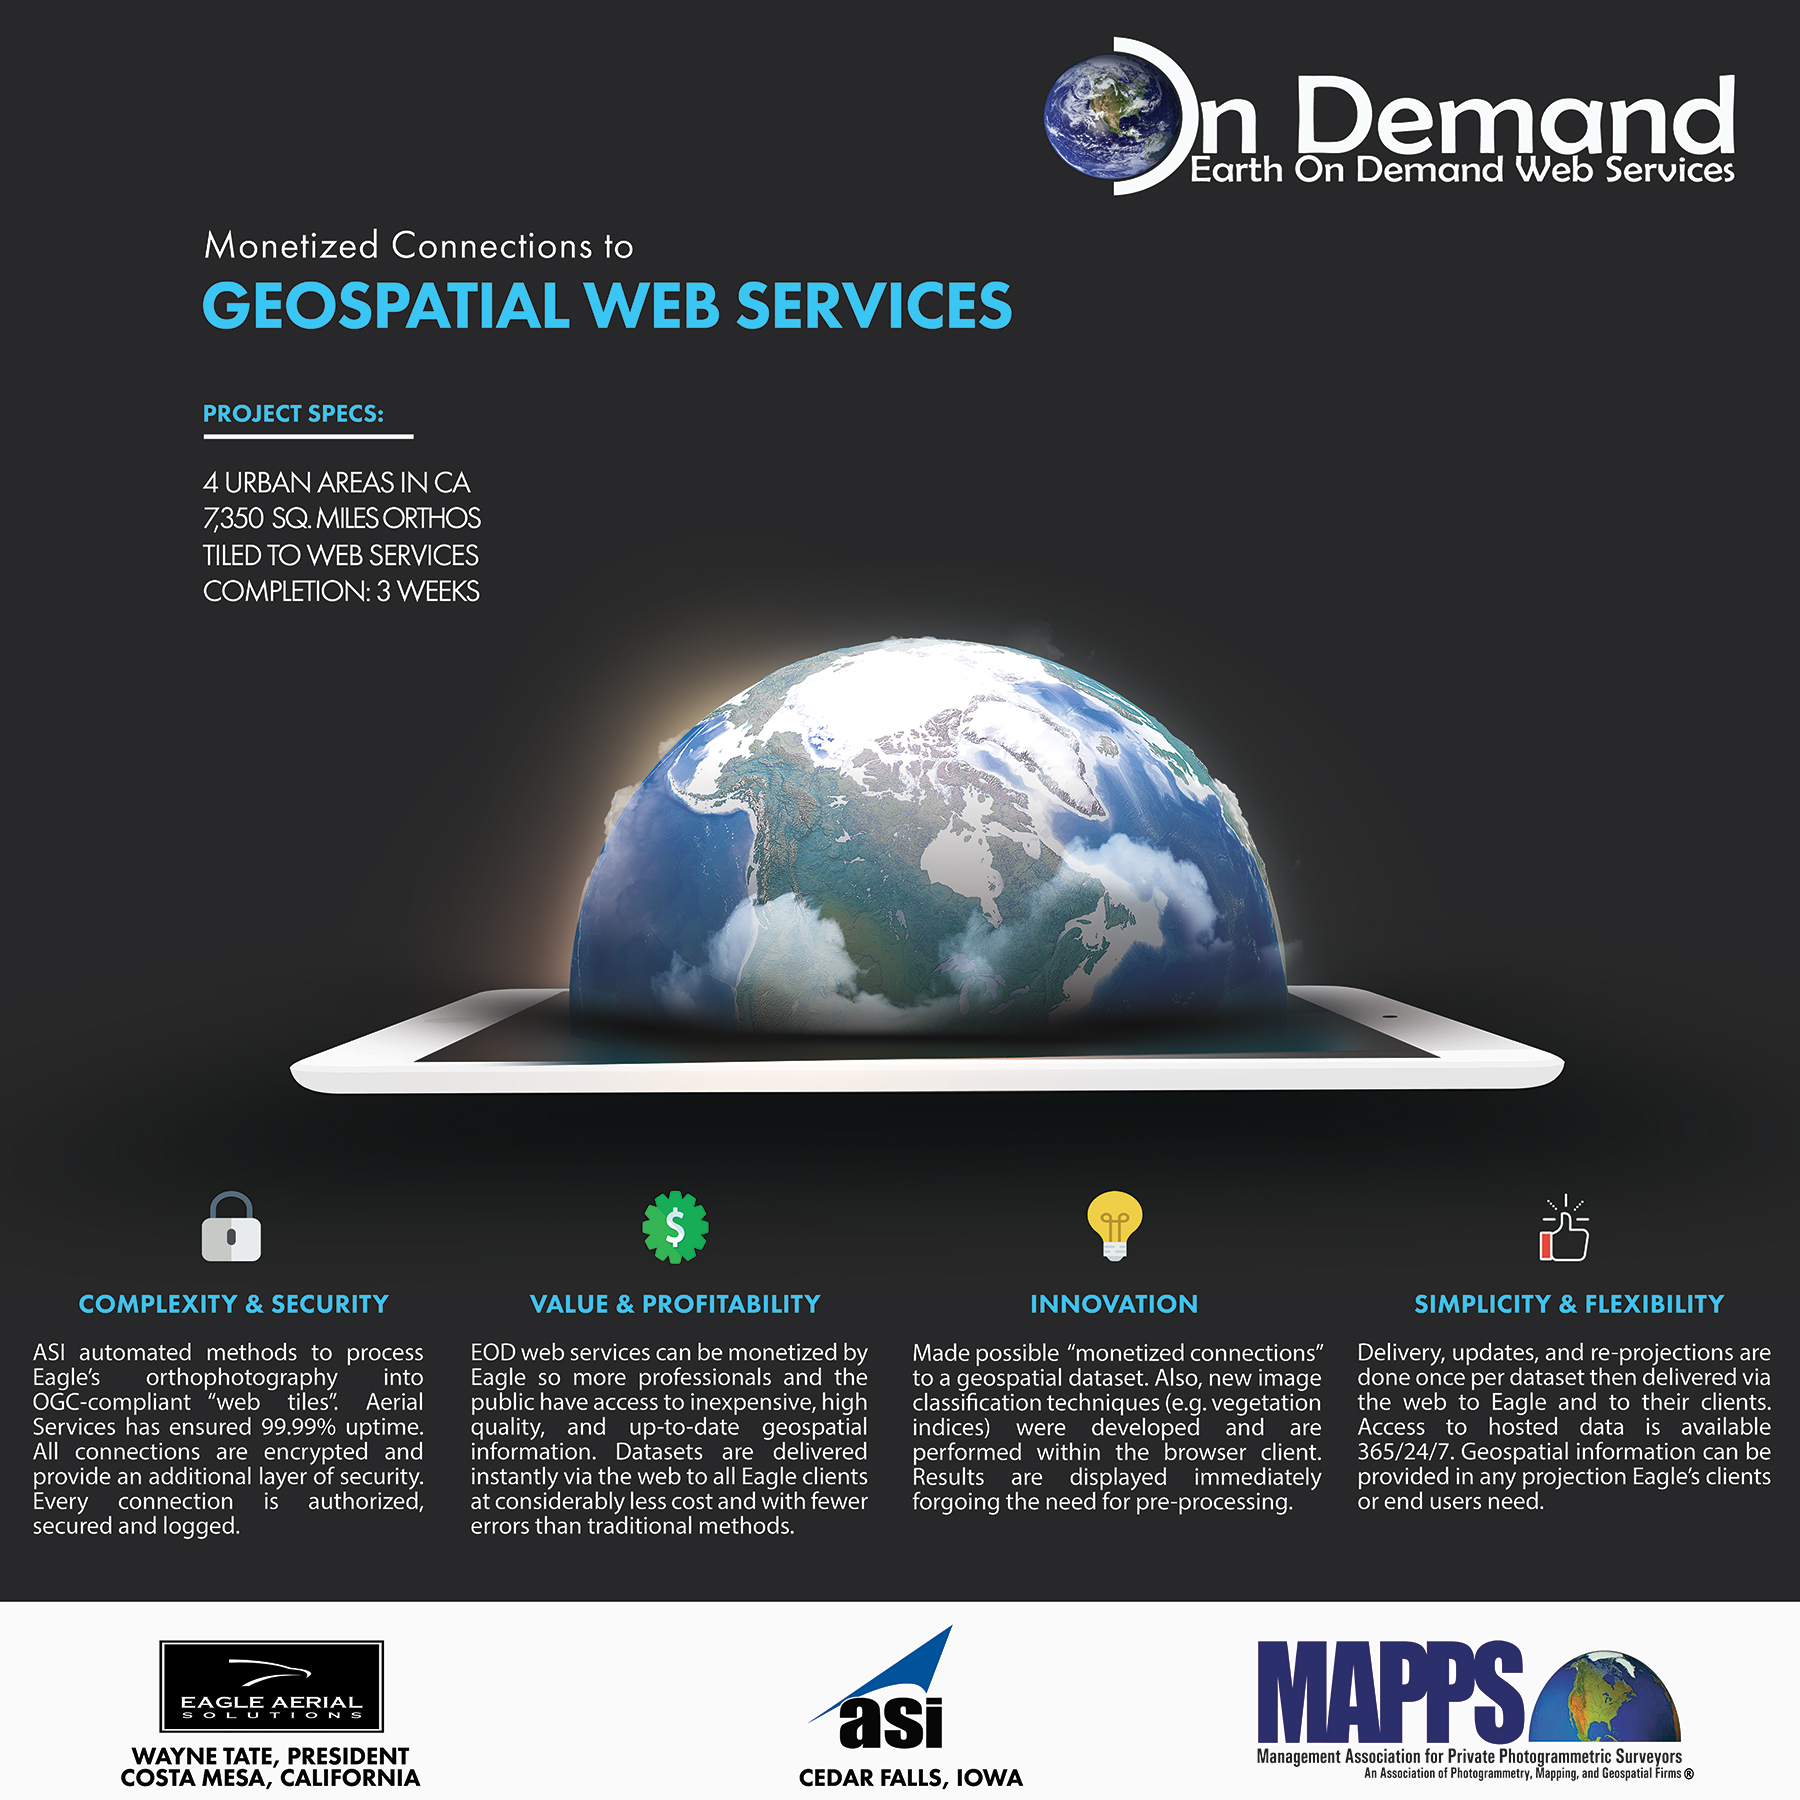 MAPPS AWARD - Earth on Demand